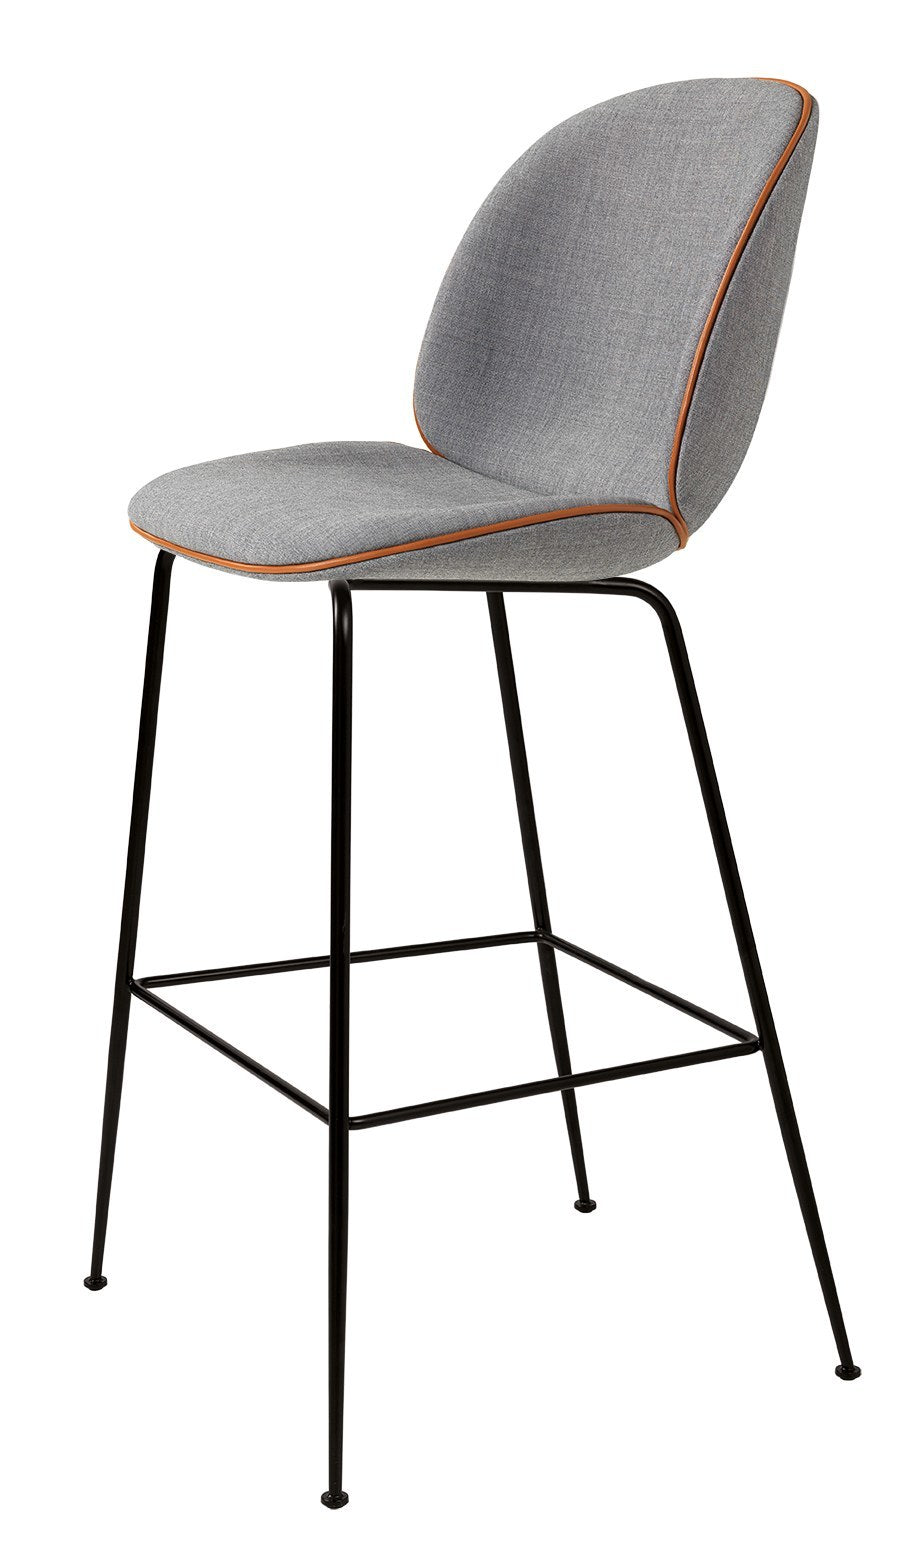 GUBI BEETLE STOOL - Eclectic Cool  - 6